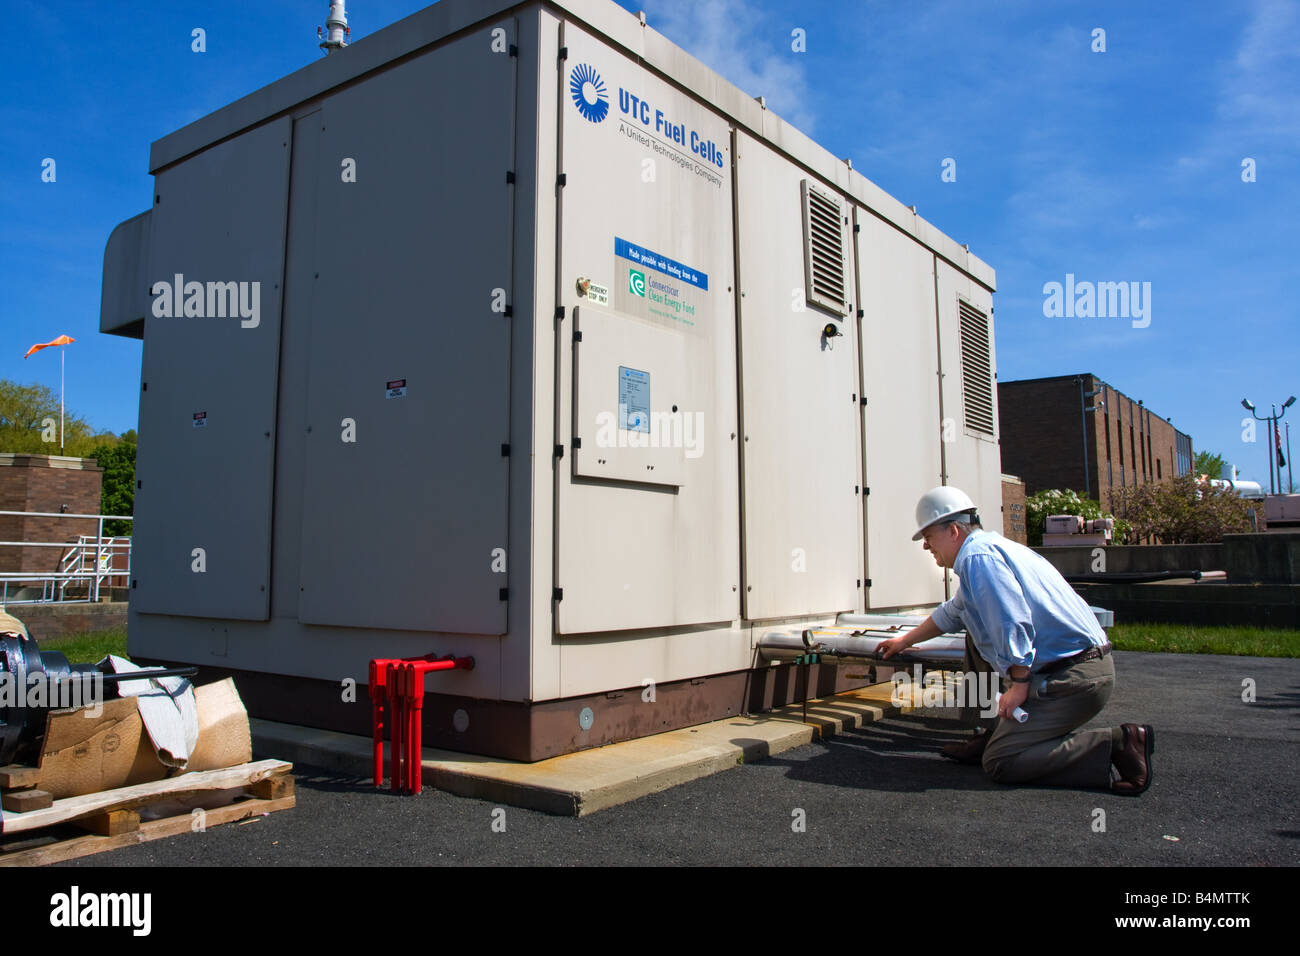 An engineer looks over a fuel cell power generator in Connecticut USA - Stock Image